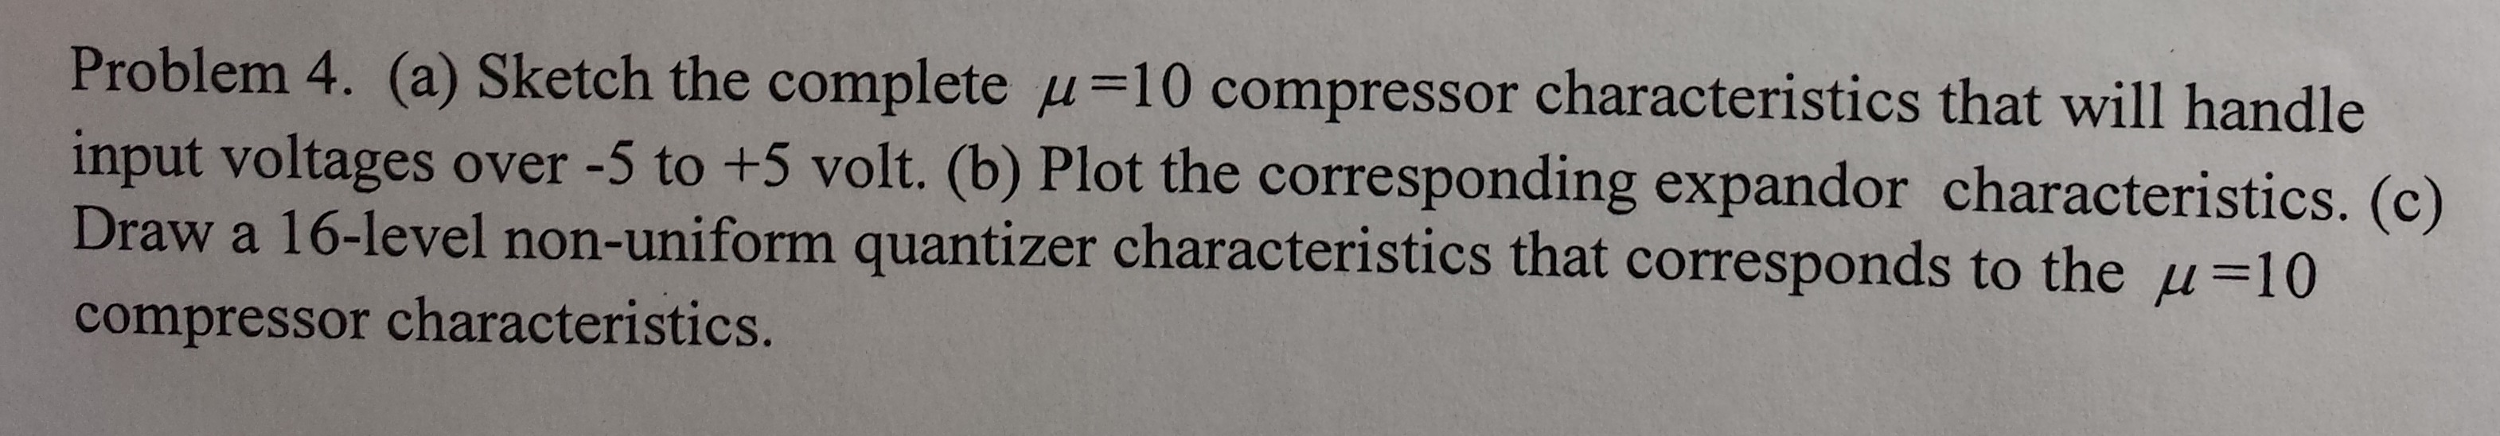 Sketch the complete mu -10 compressor characterist